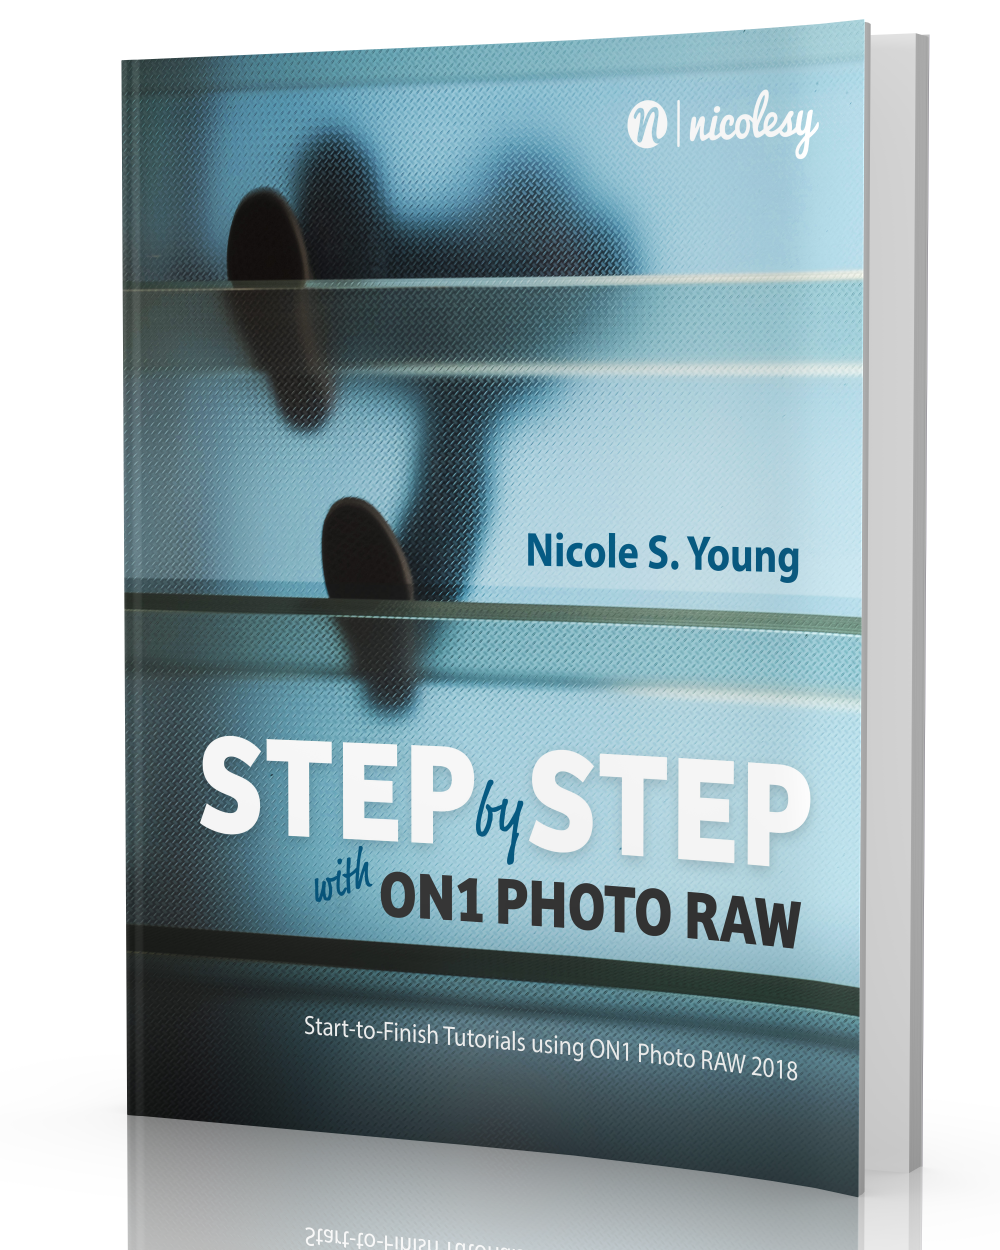 Step by Step with ON1 Photo RAW (2018) (Print Book)